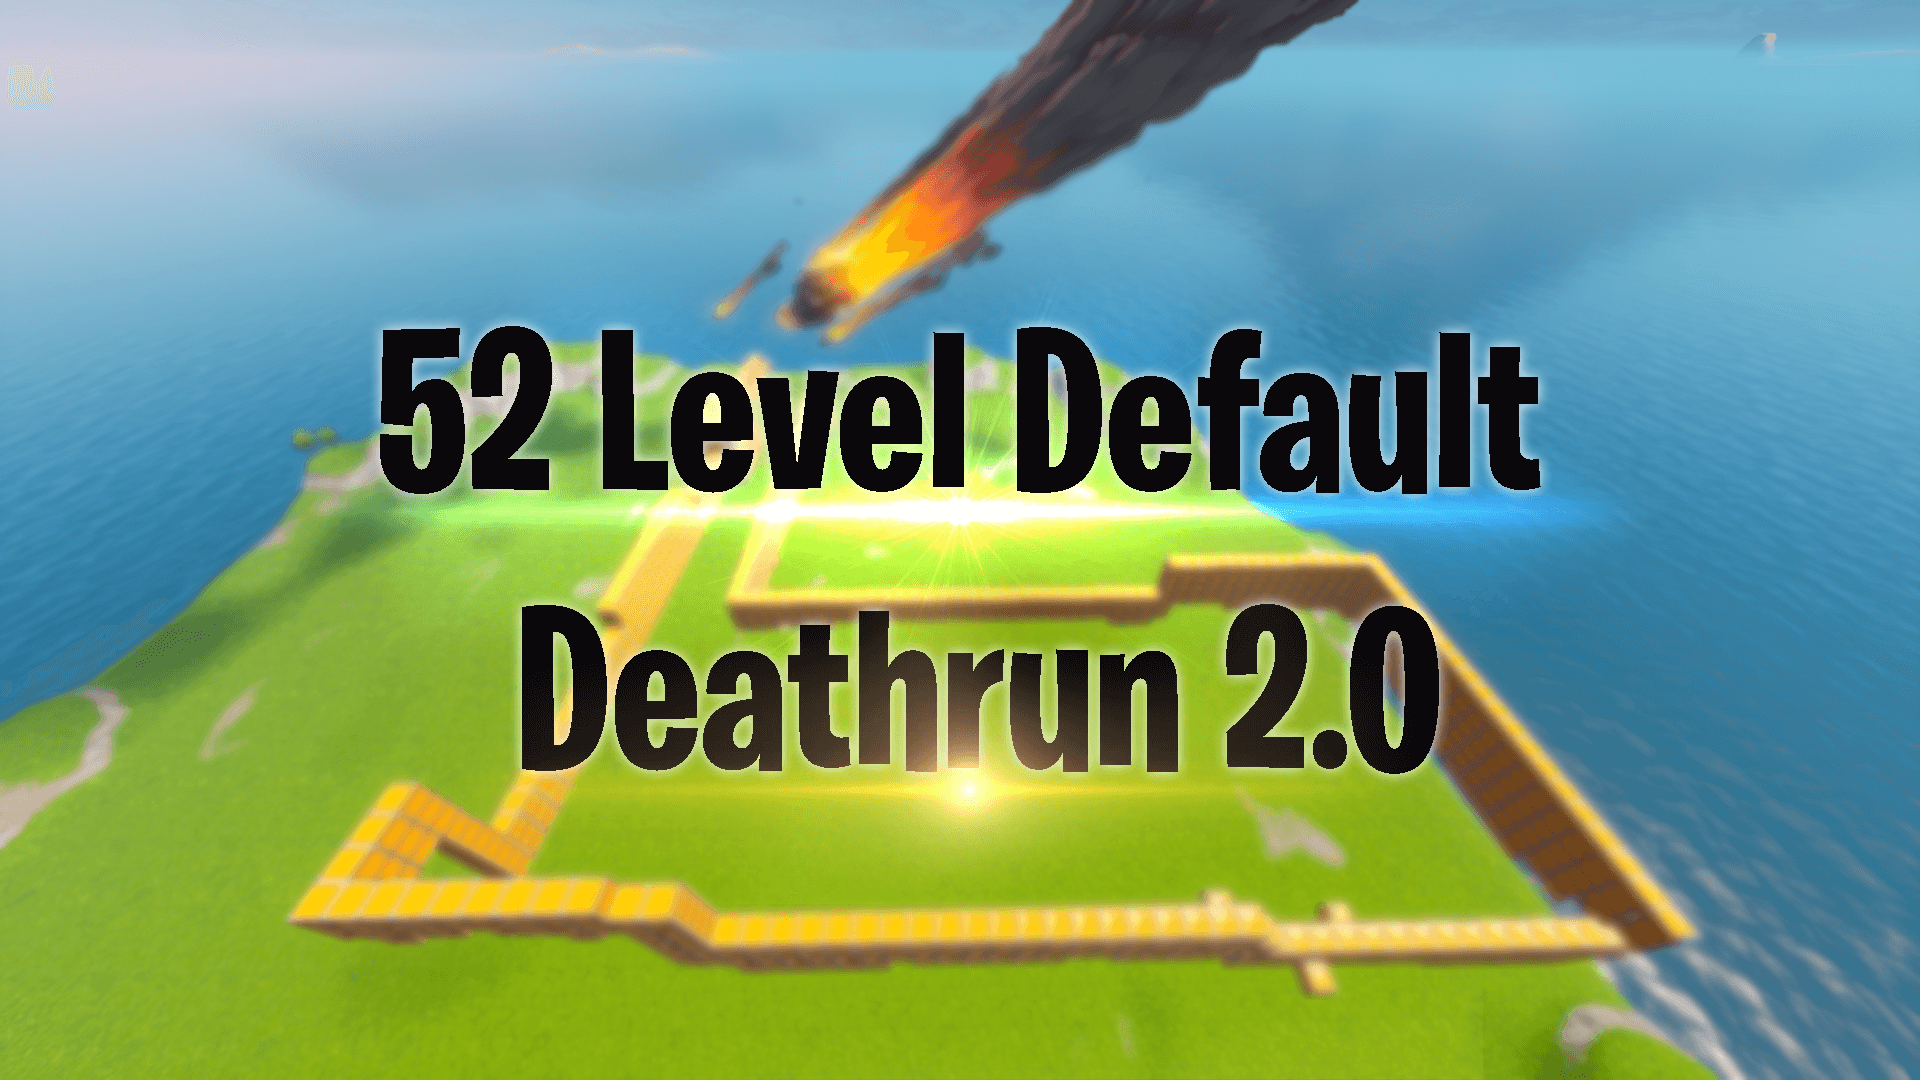 52 LEVEL DEFAULT DEATHRUN 2.0